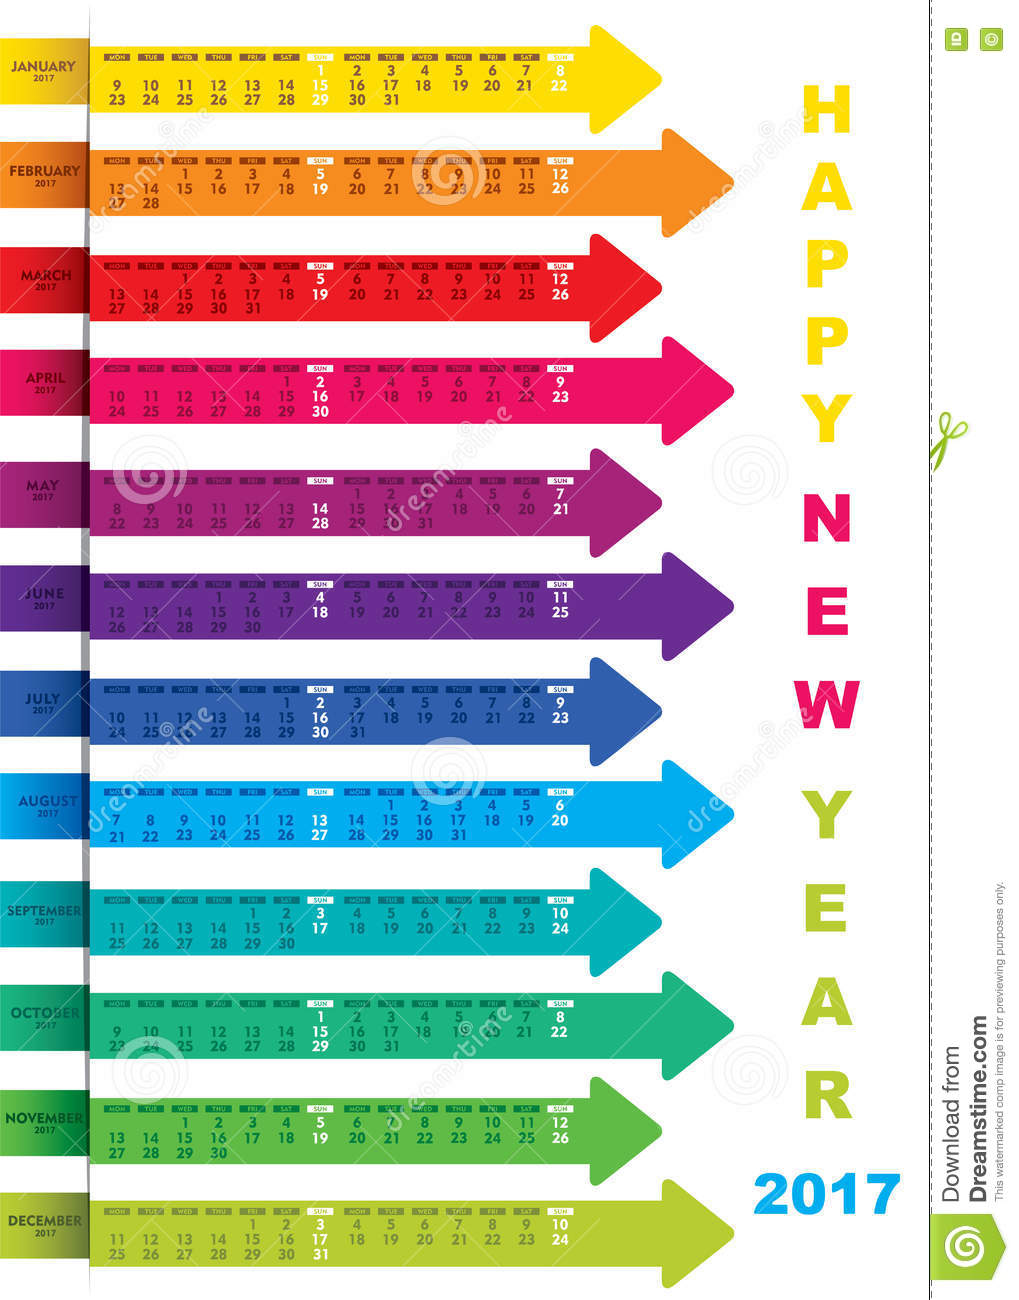 New Year Calendar Designs : Creative new year calendar design stock vector